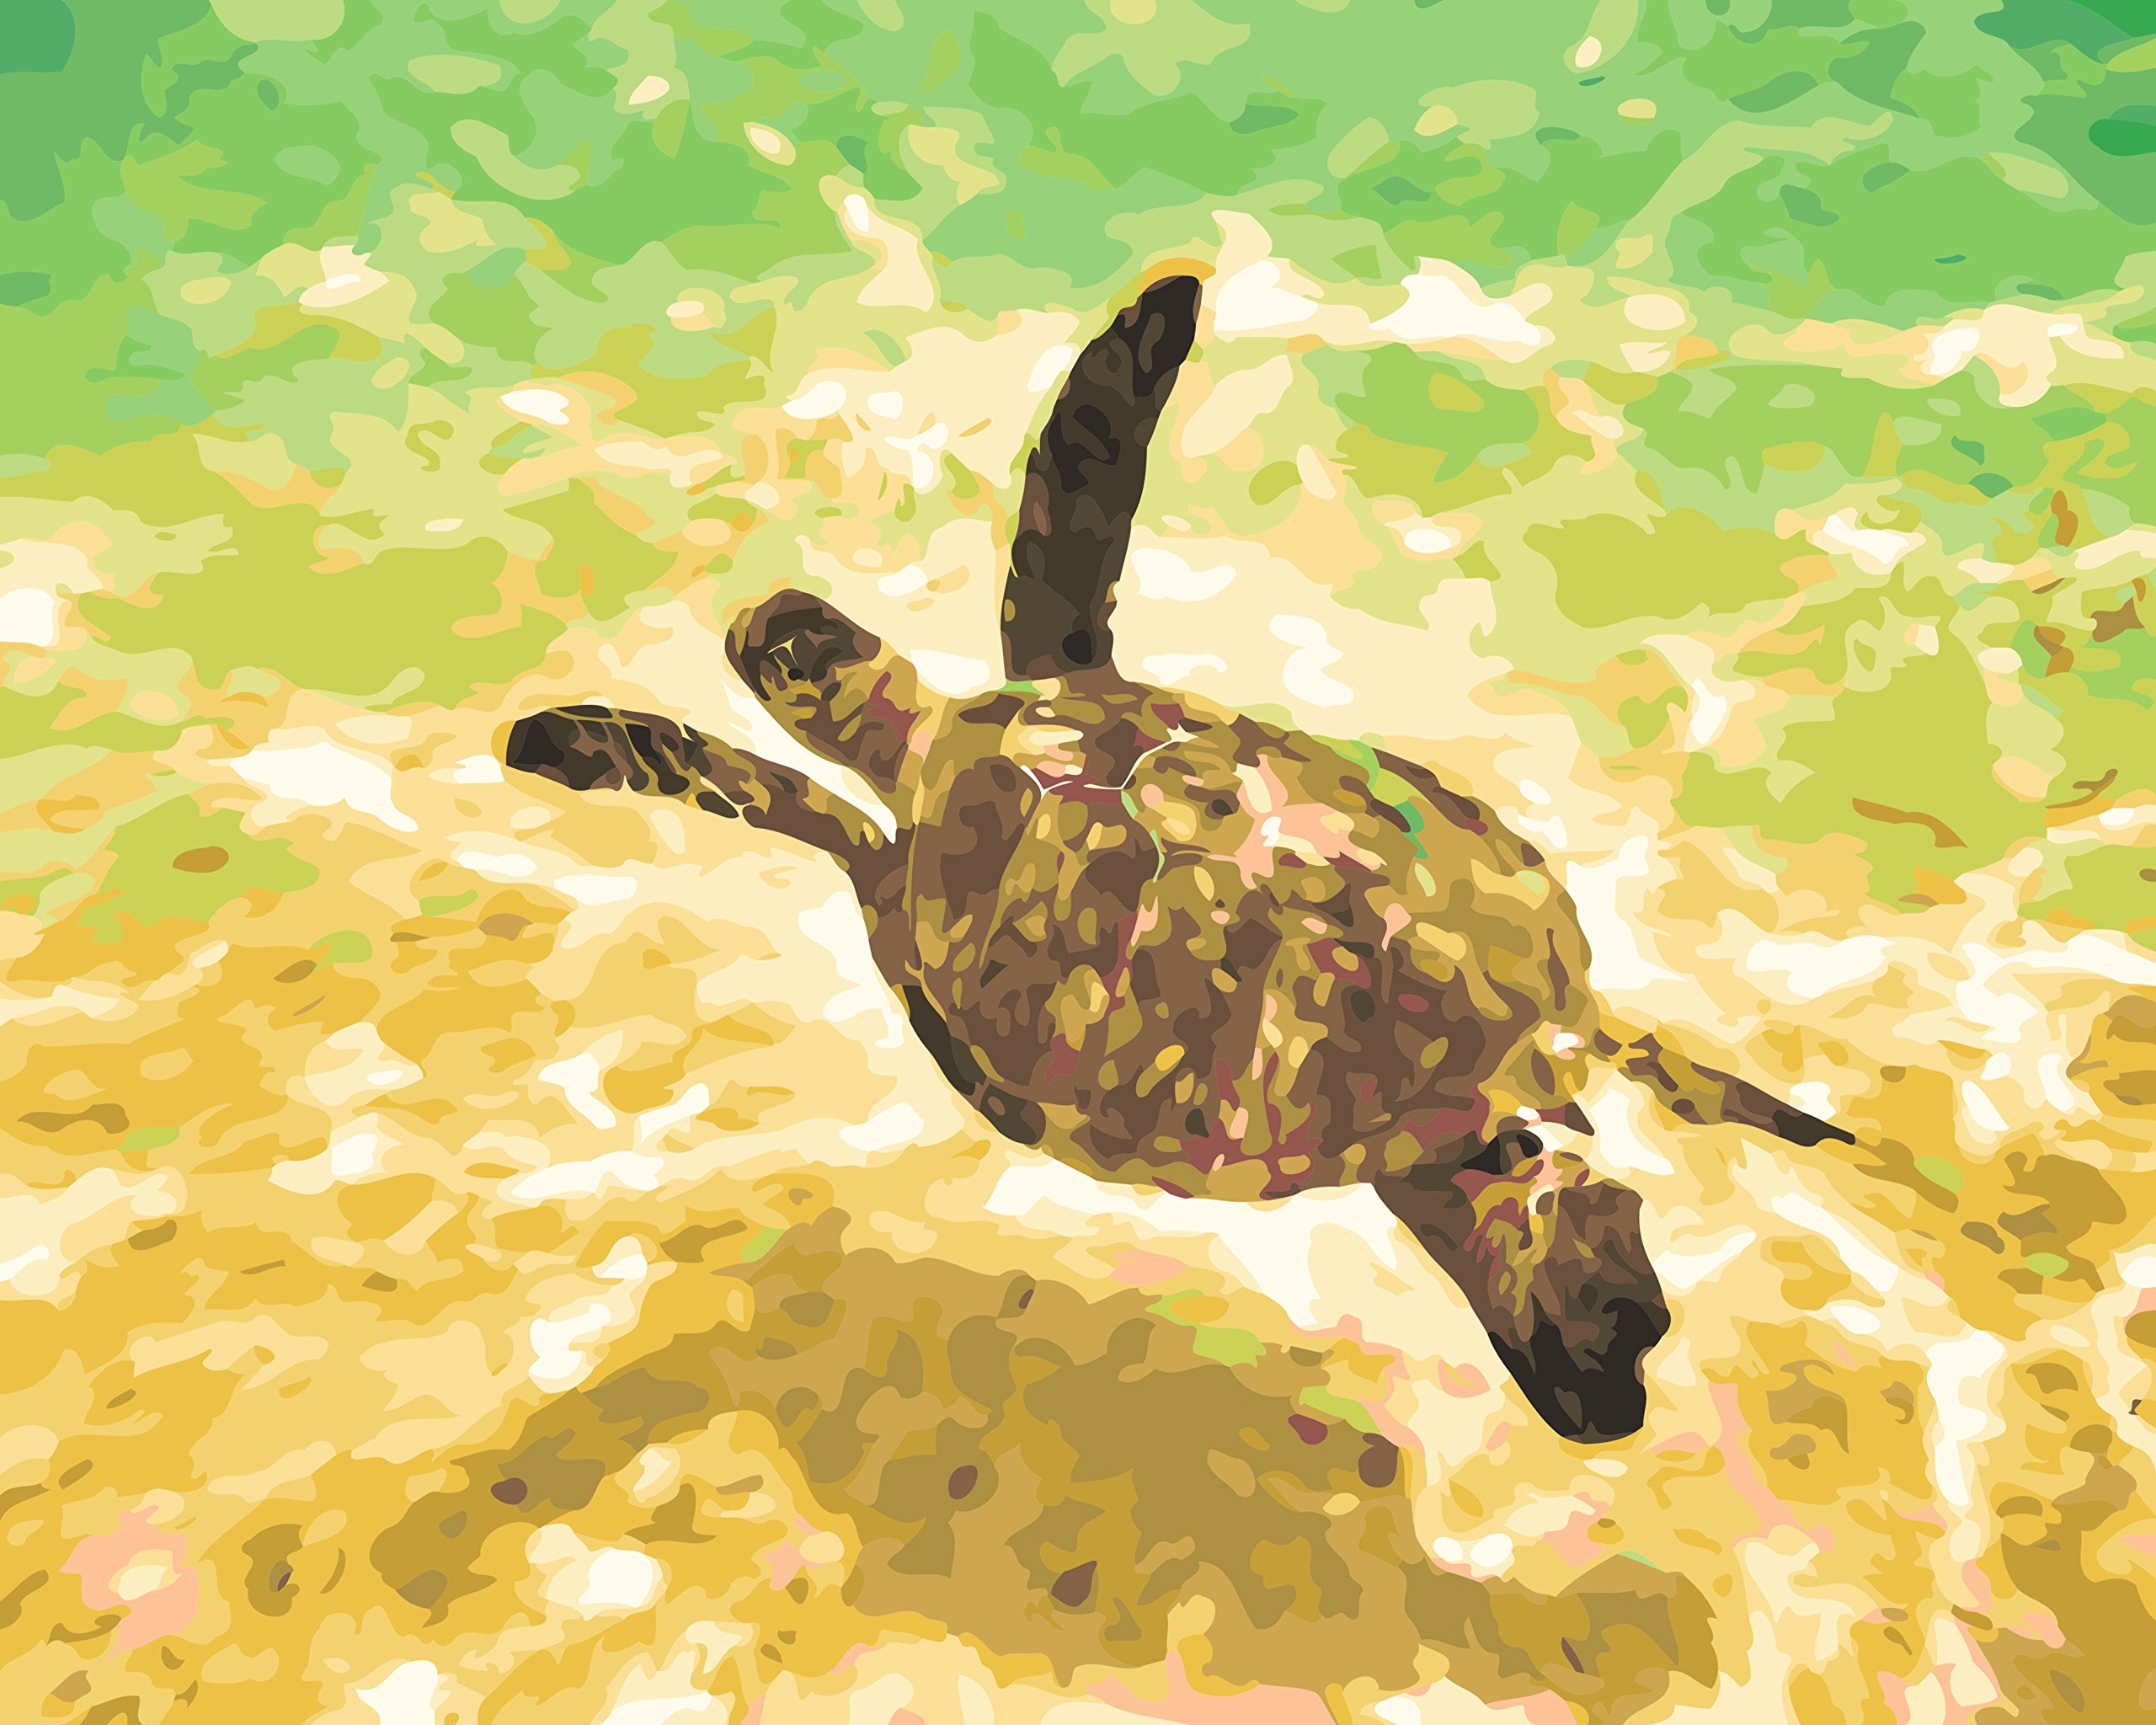 Kauai Sea Turtle Paint by Numbers for Adults DIY Acrylic Painting Kit by MaileKai Creates, 16x20 inches, Wooden Framed Linen Canvas, 4 Professional Brushes